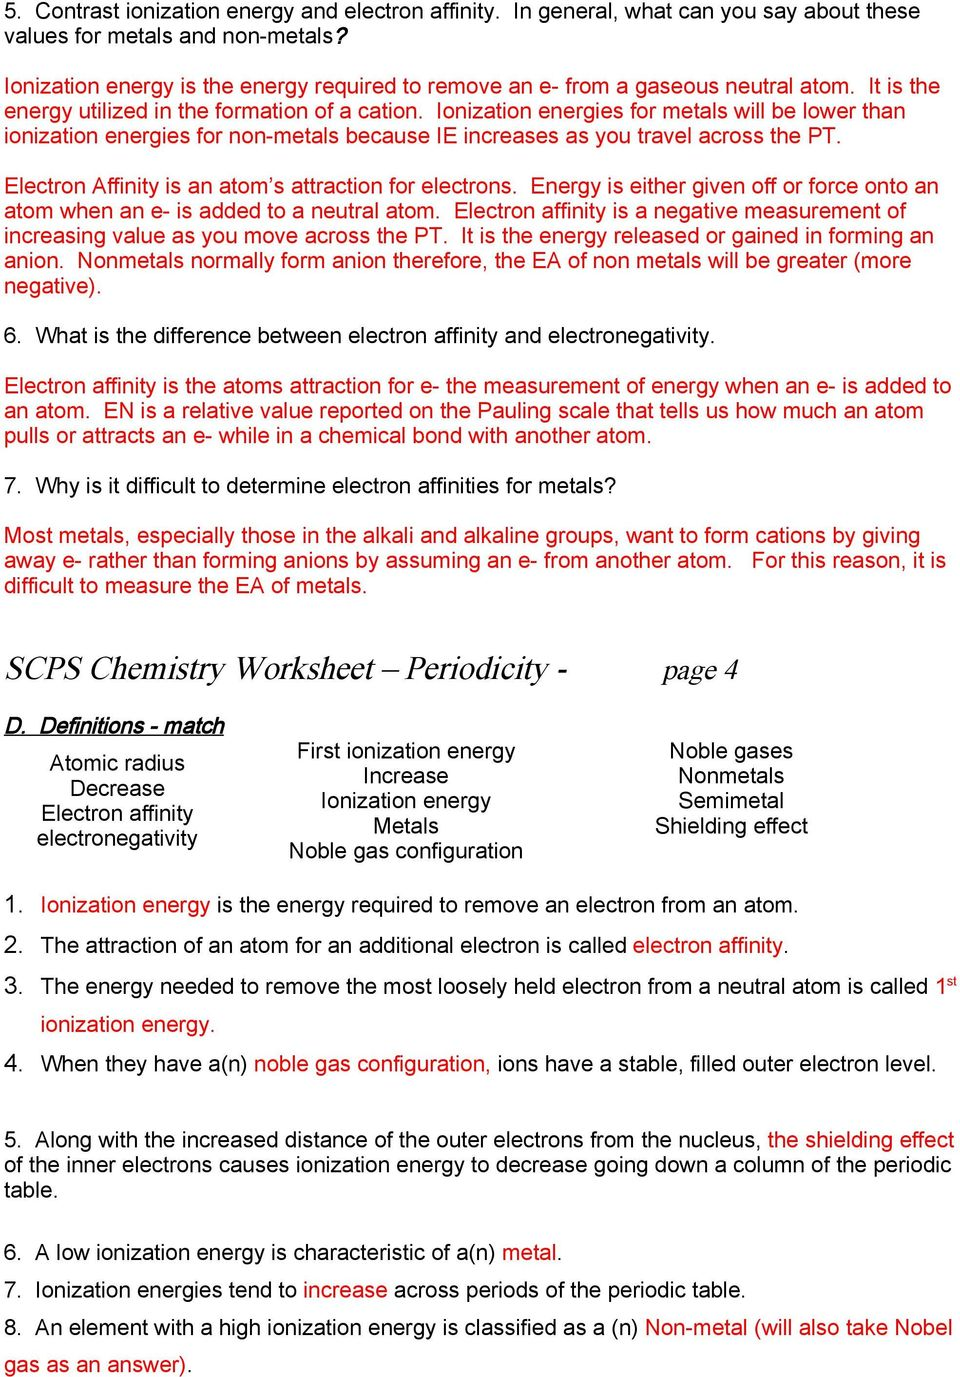 Scps chemistry worksheet periodicity a periodic table 1 which are ionization energies for metals will be lower than ionization energies for non metals because ie urtaz Gallery